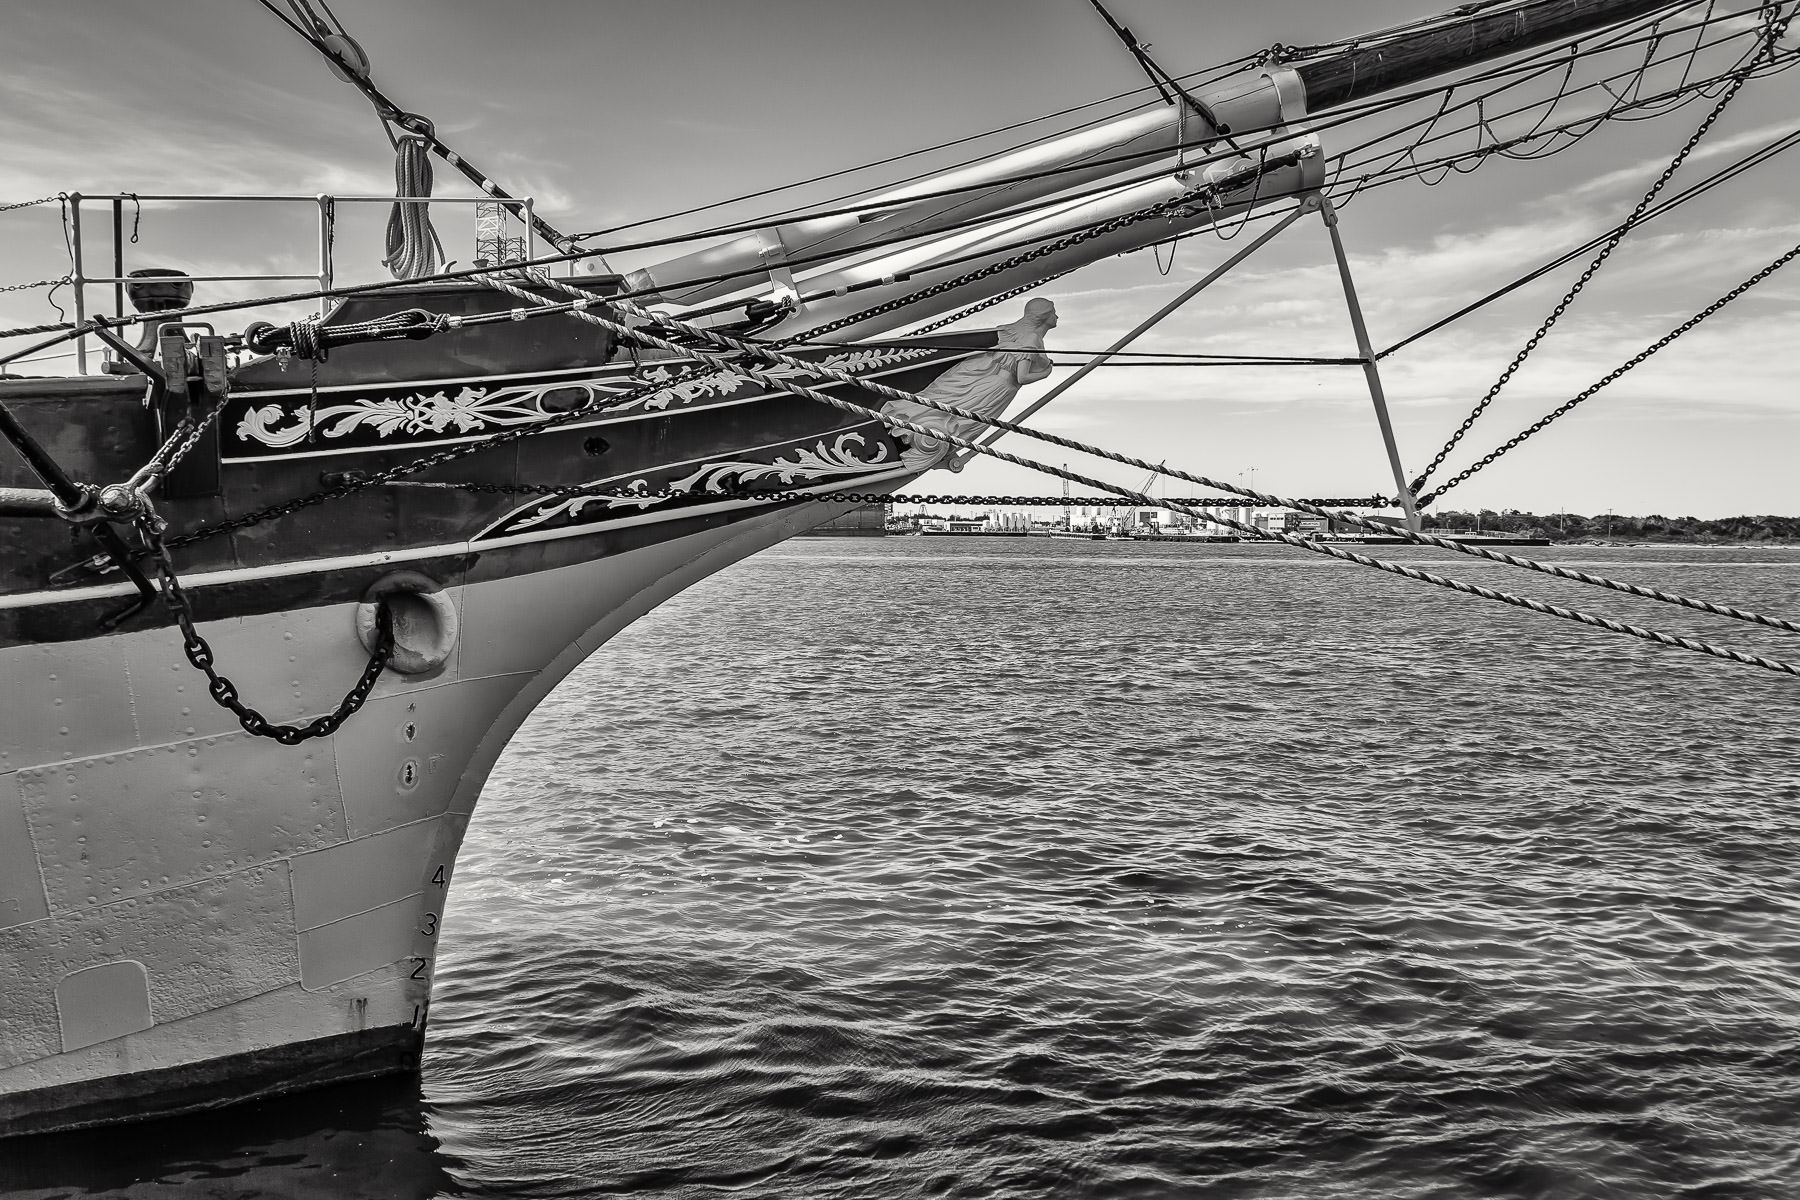 The bow of the Elissa, a tall ship launched in 1877 and now ported in Galveston, Texas.